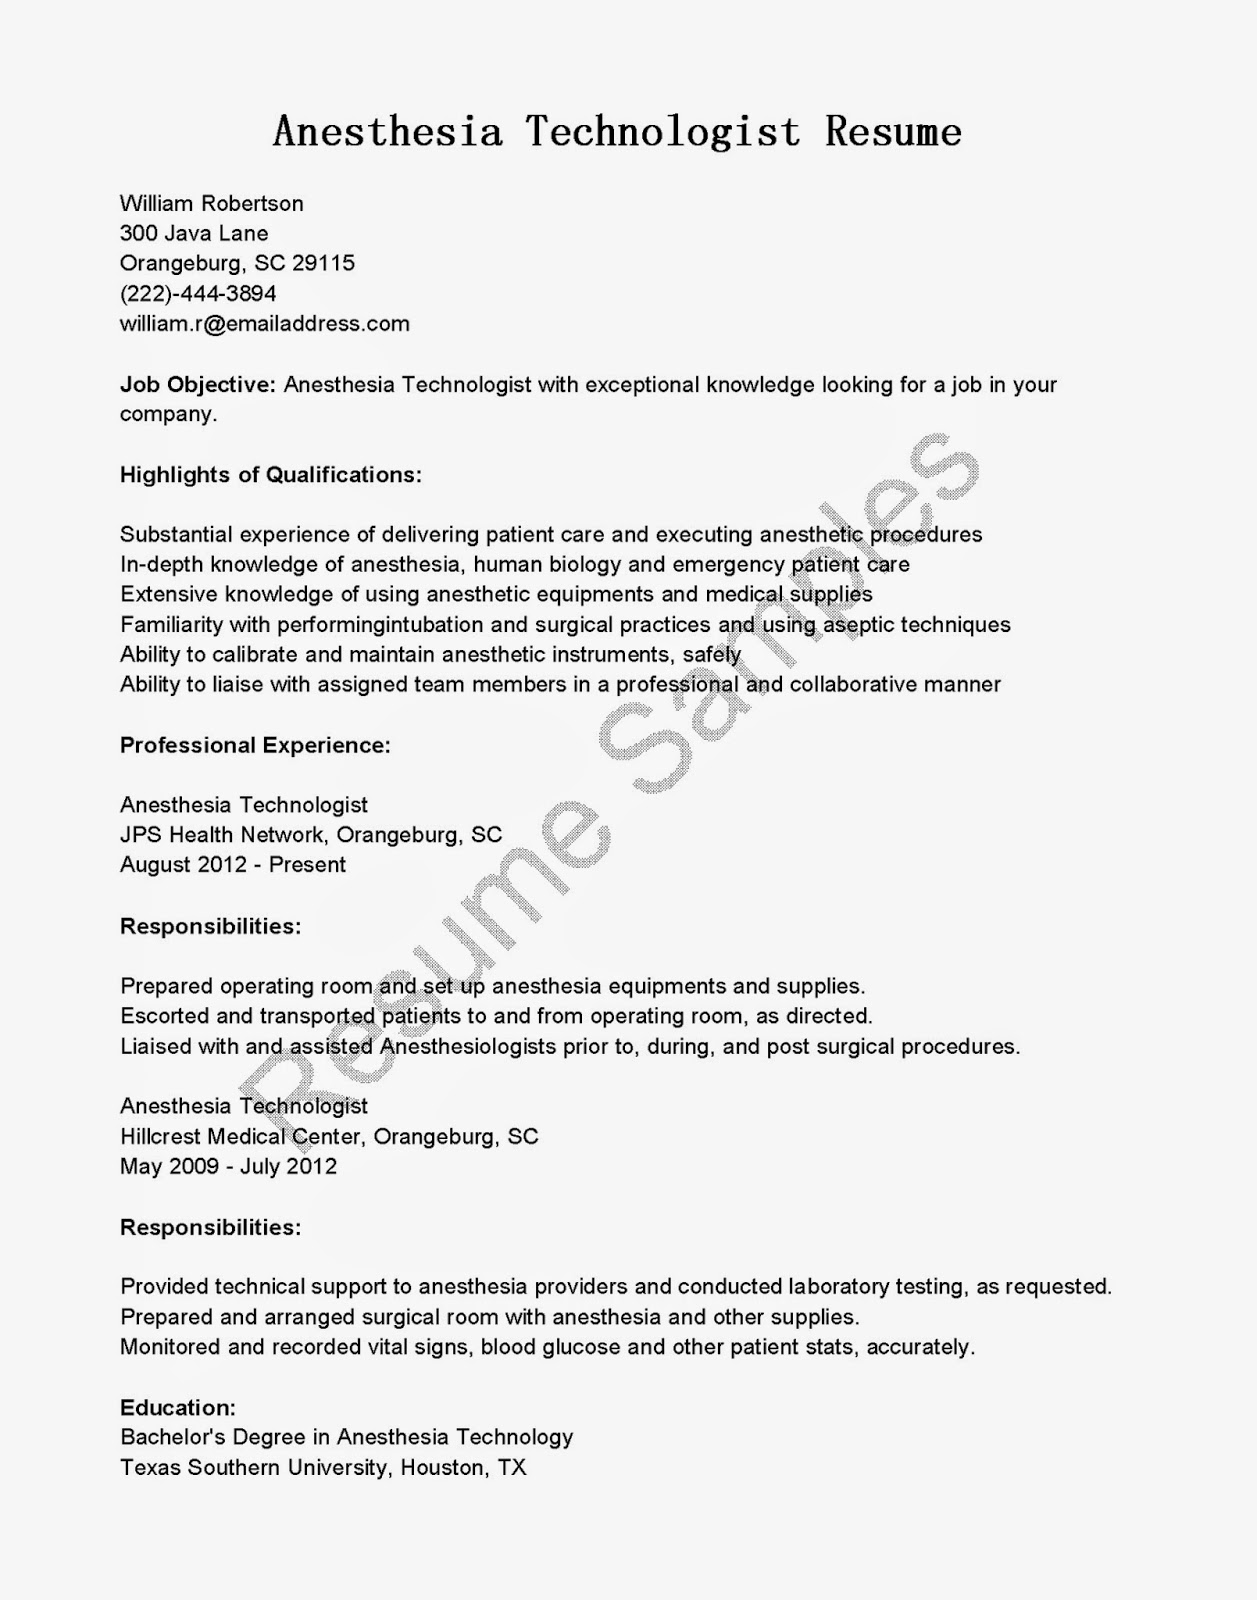 texas tech resume help best resume writing services brisbane medical customer service representative resume